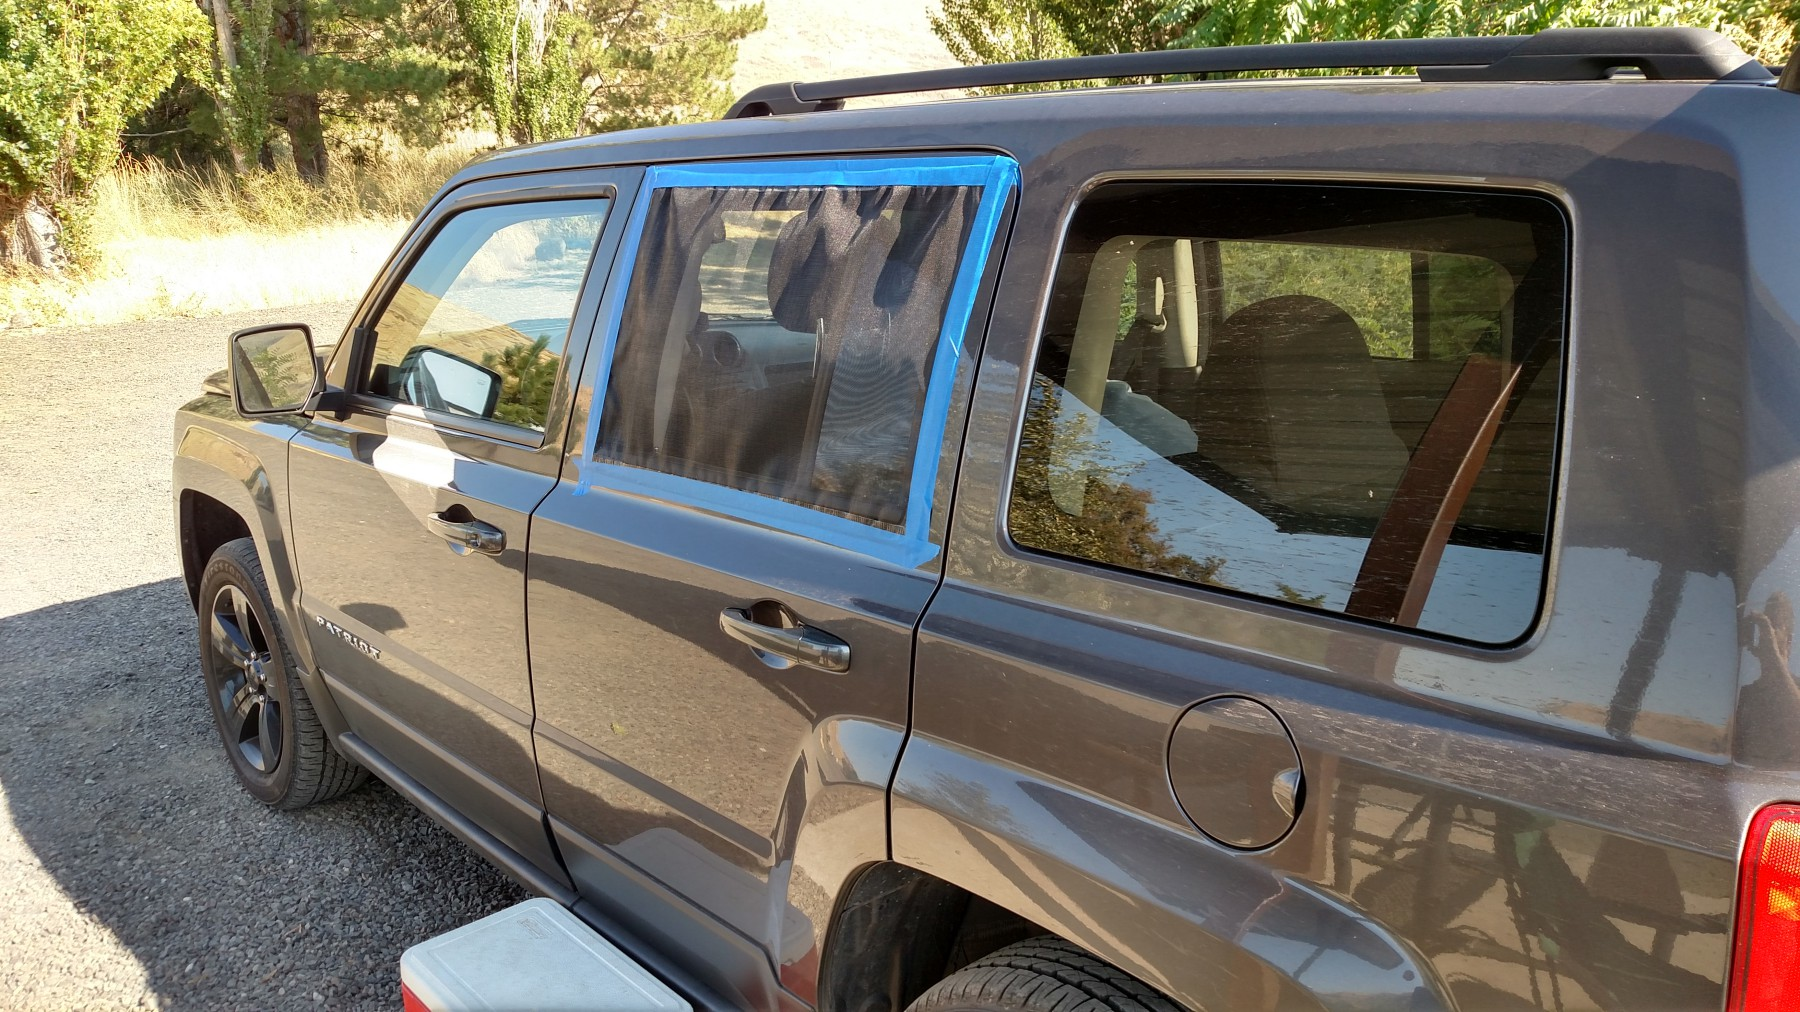 Tent Jeep Patriot u0026 . Sport Arizona Forums & 20+ Jeep Patriot Tent Pictures and Ideas on STEM Education Caucus